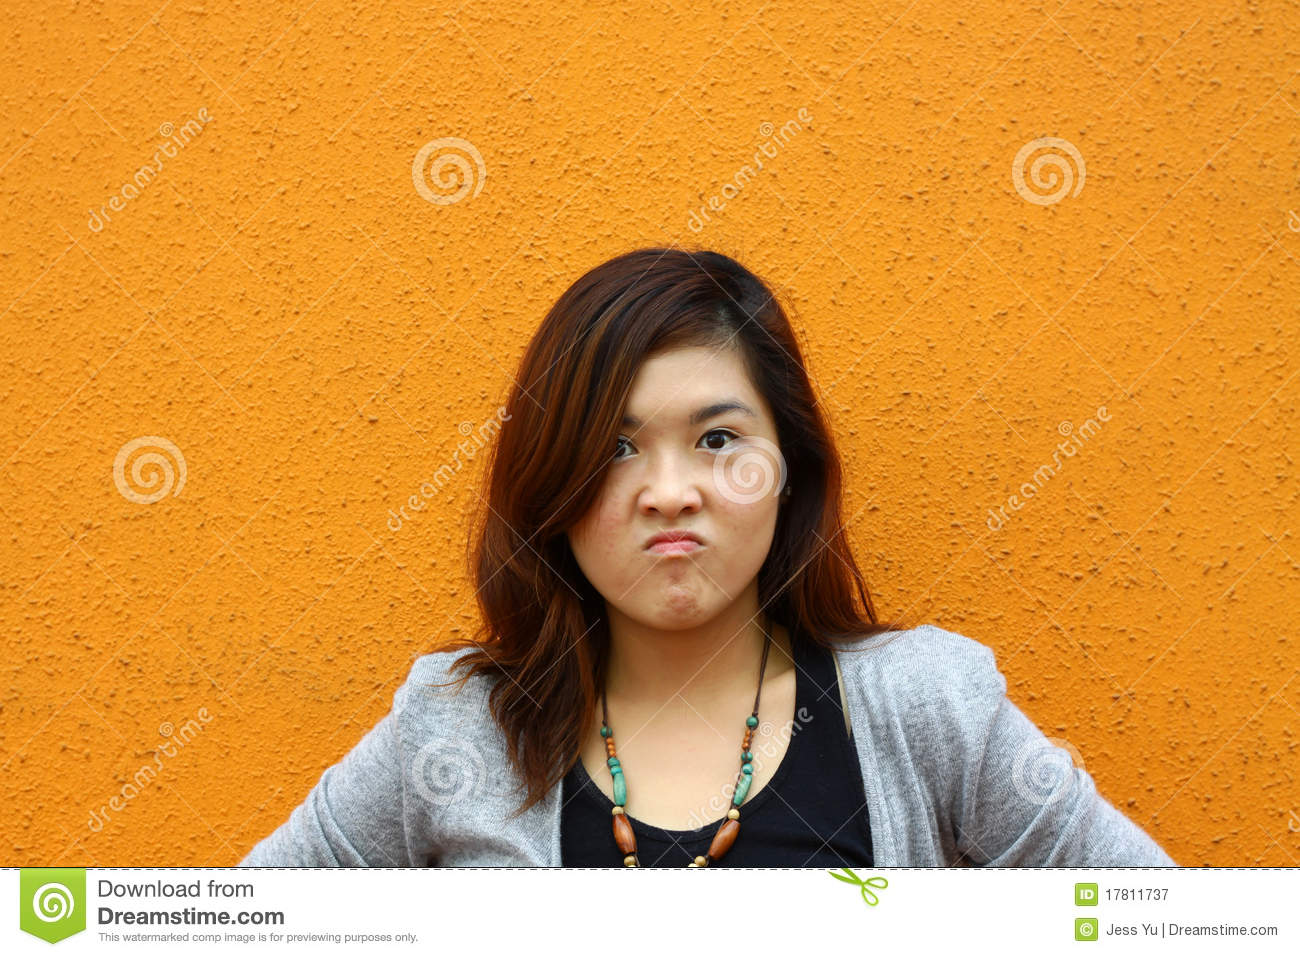 angry asian face - photo #11